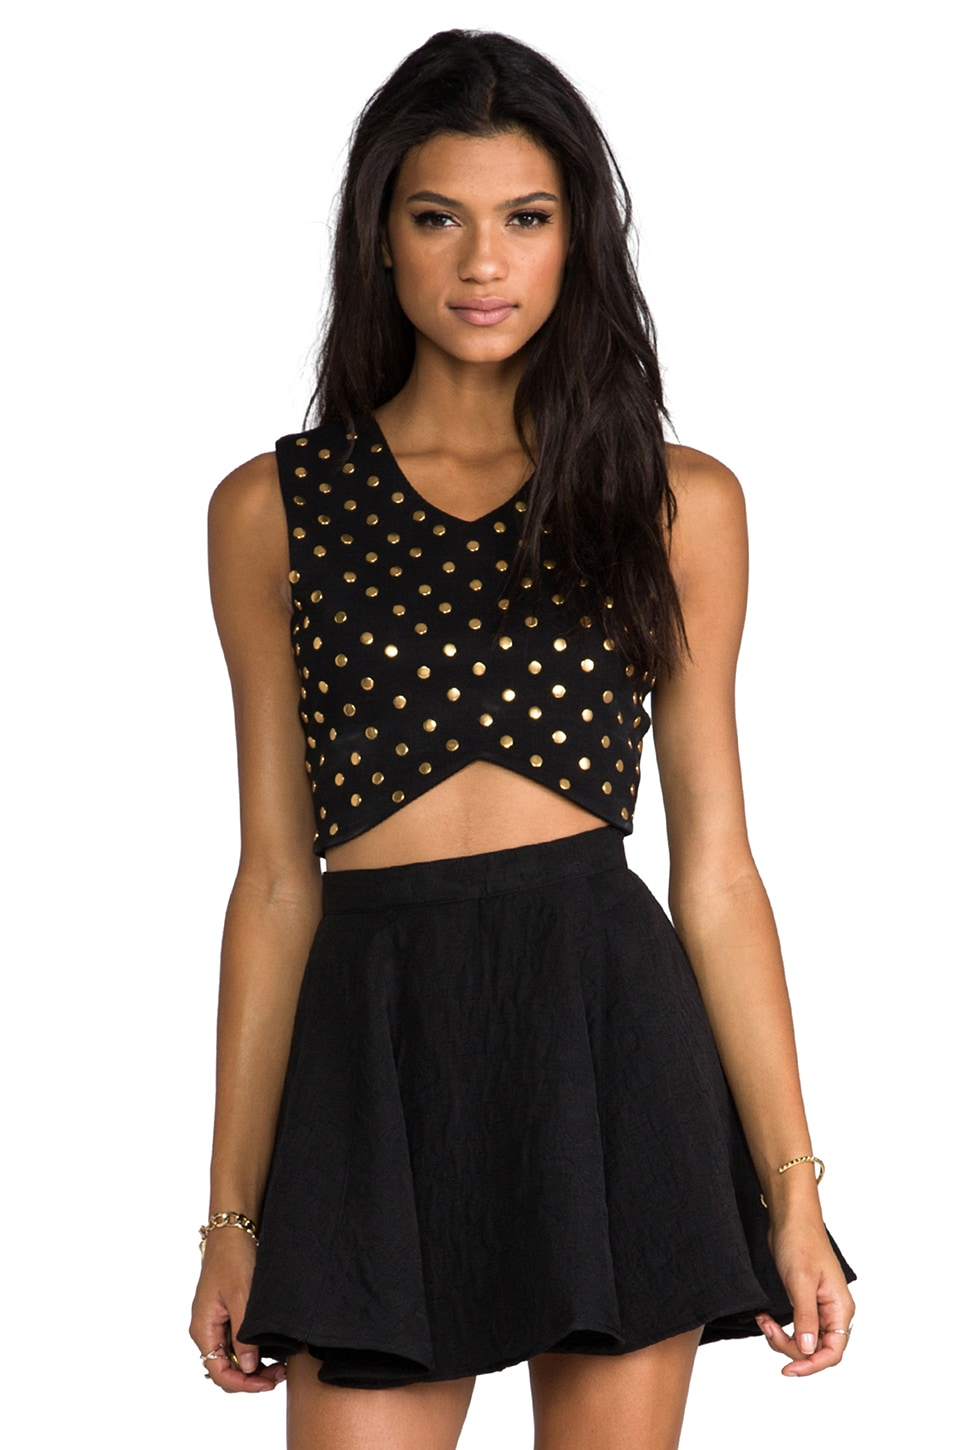 Lovers + Friends REVOLVE Exclusive Blaine Studded Crop Top in Black